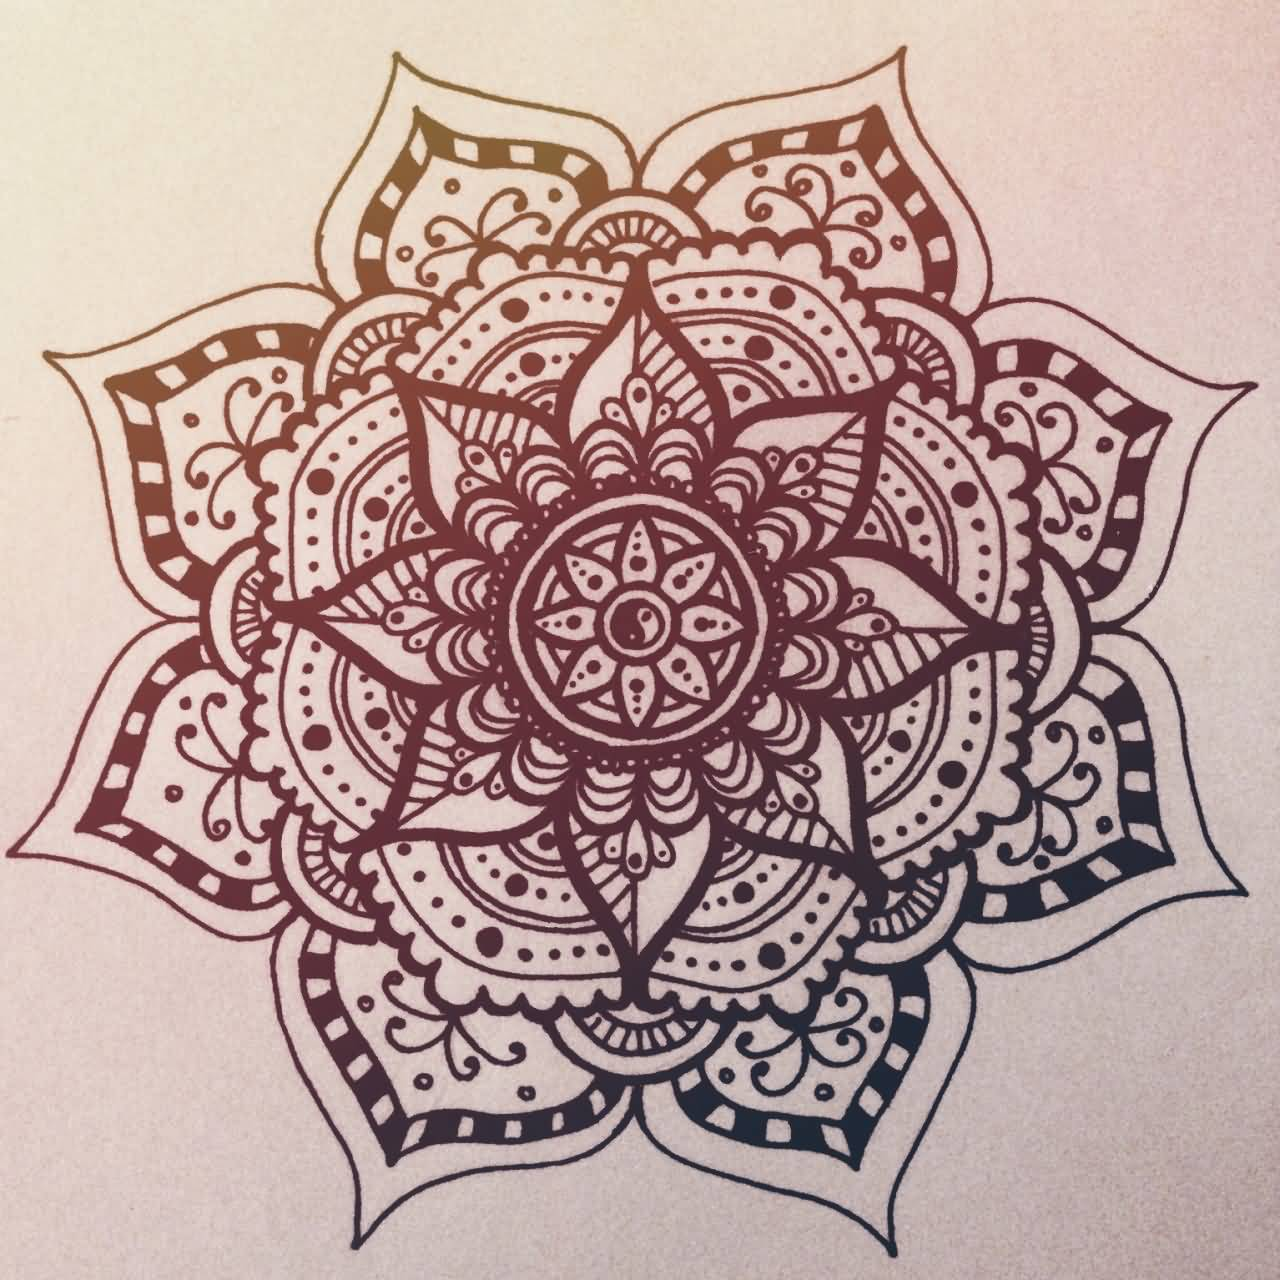 22 Mandala Tattoo Designs Ideas: Mandala Tattoo Images & Designs